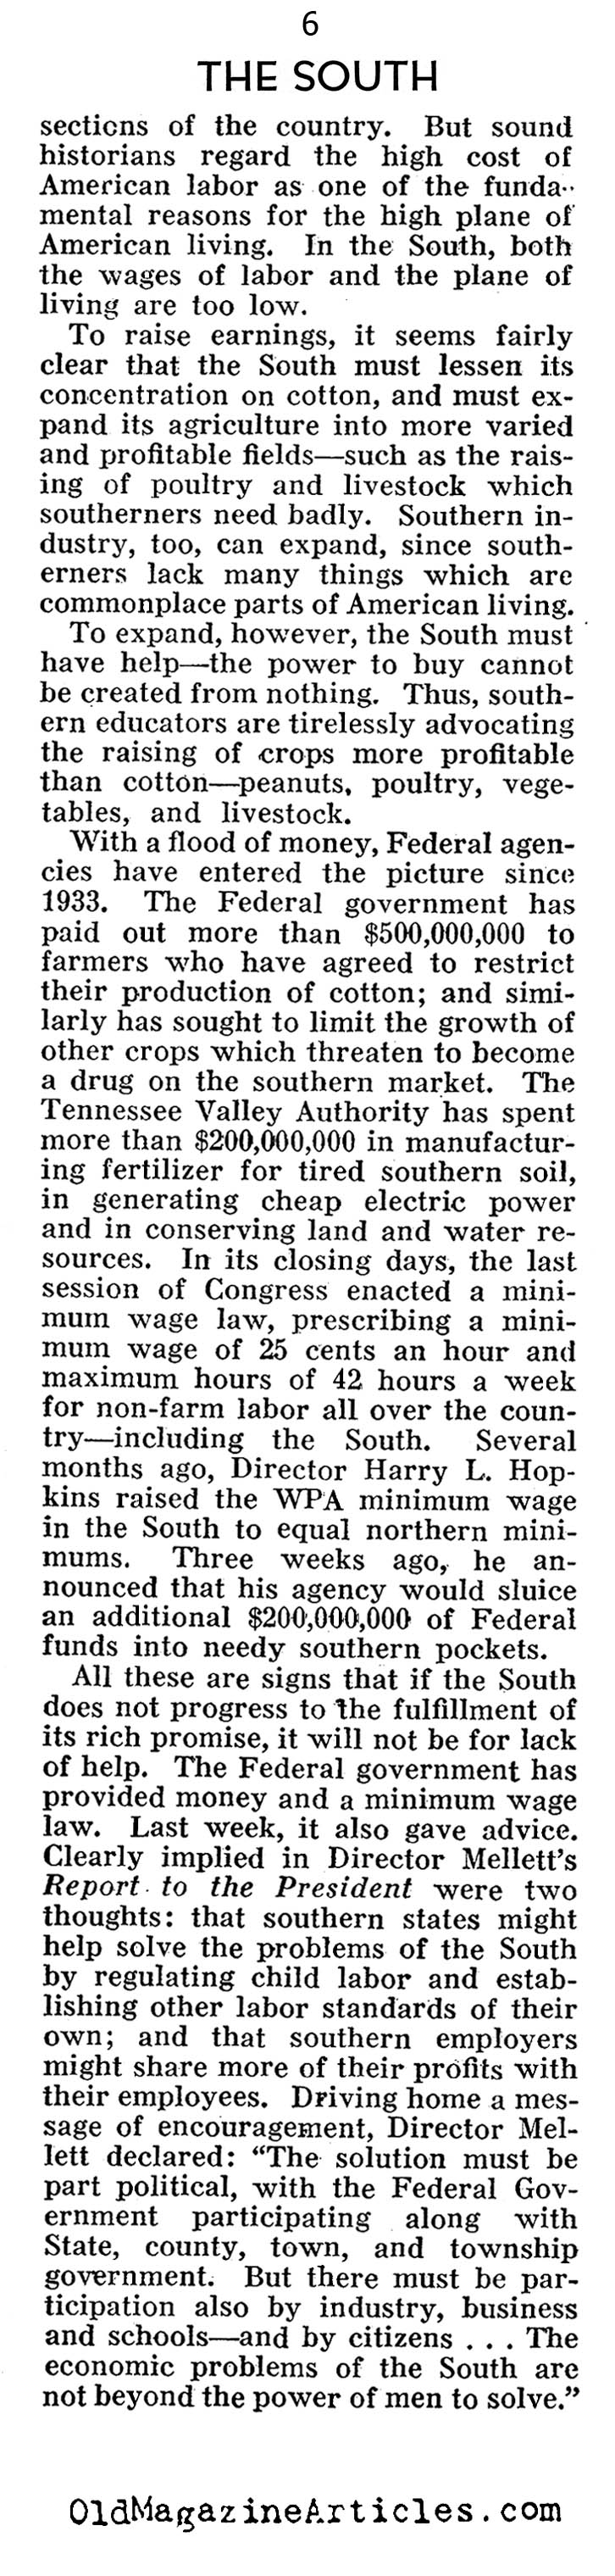 The Great Depression in the South (Pathfinder Magazine, 1938)